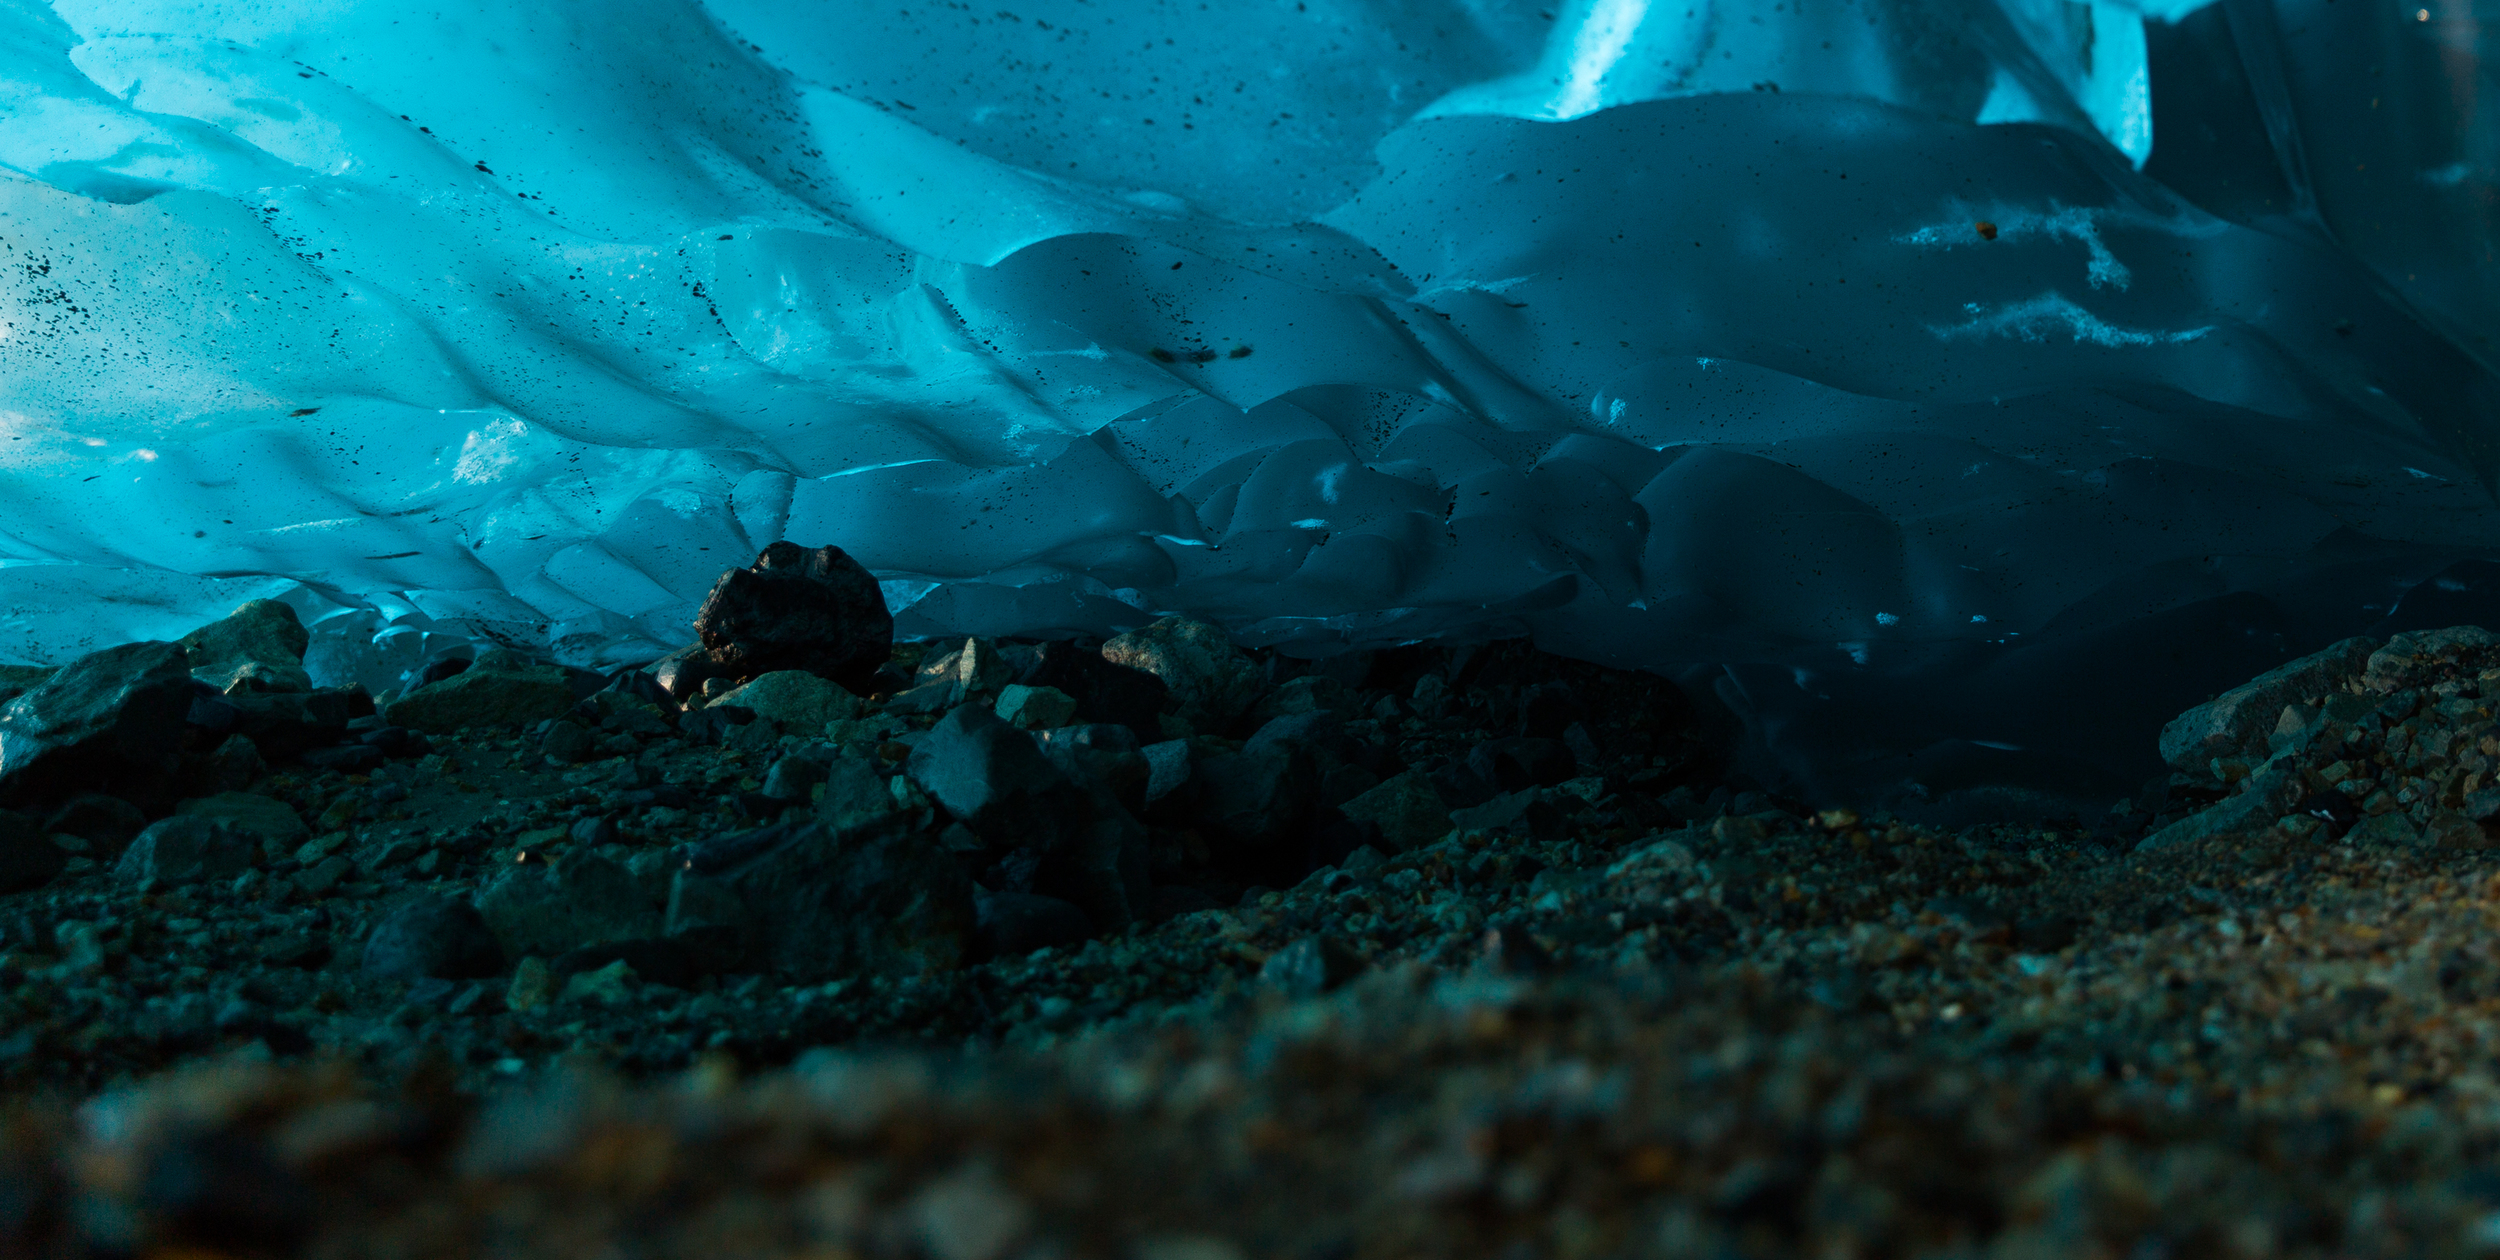 Ice Caves, Kennicott, Alaska